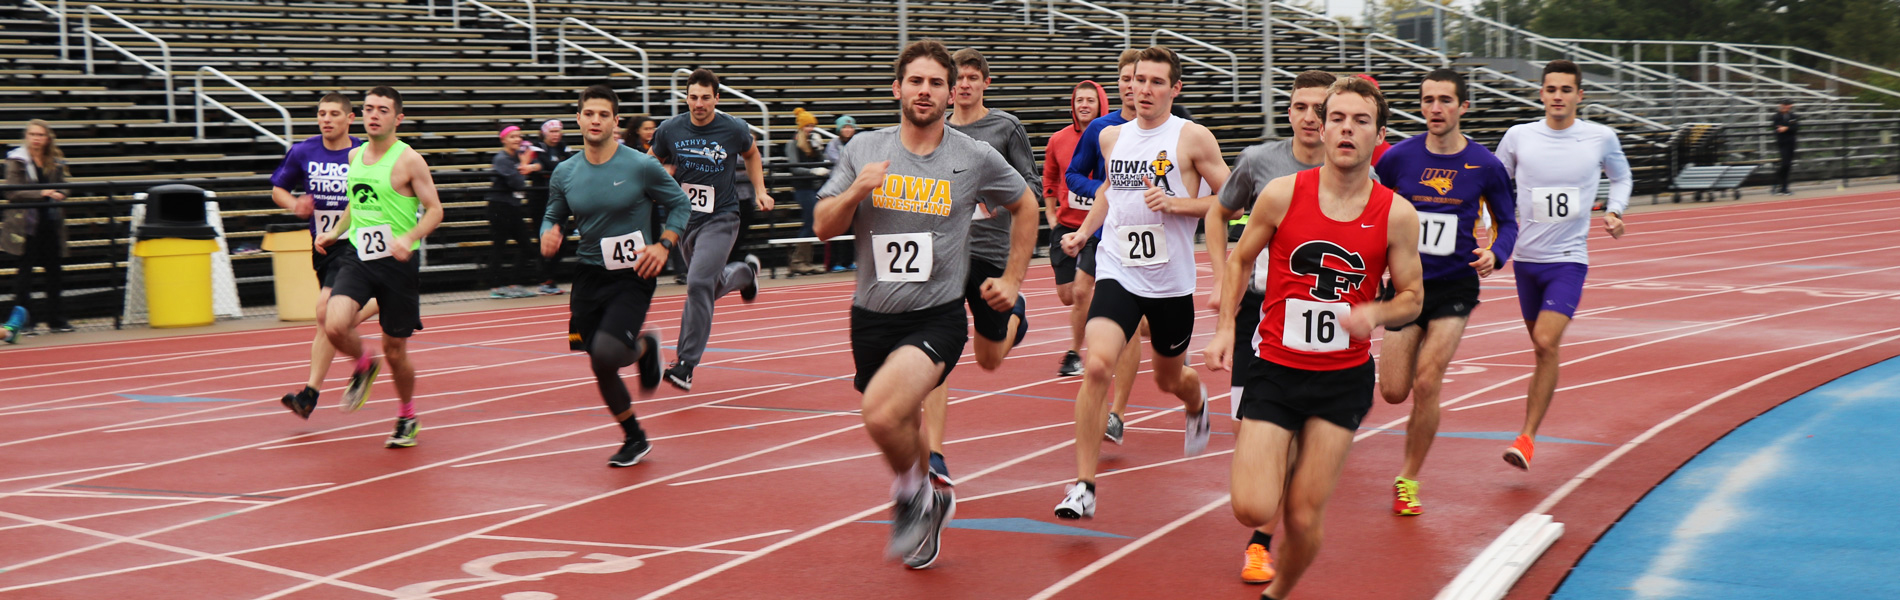 Black and Gold mile run